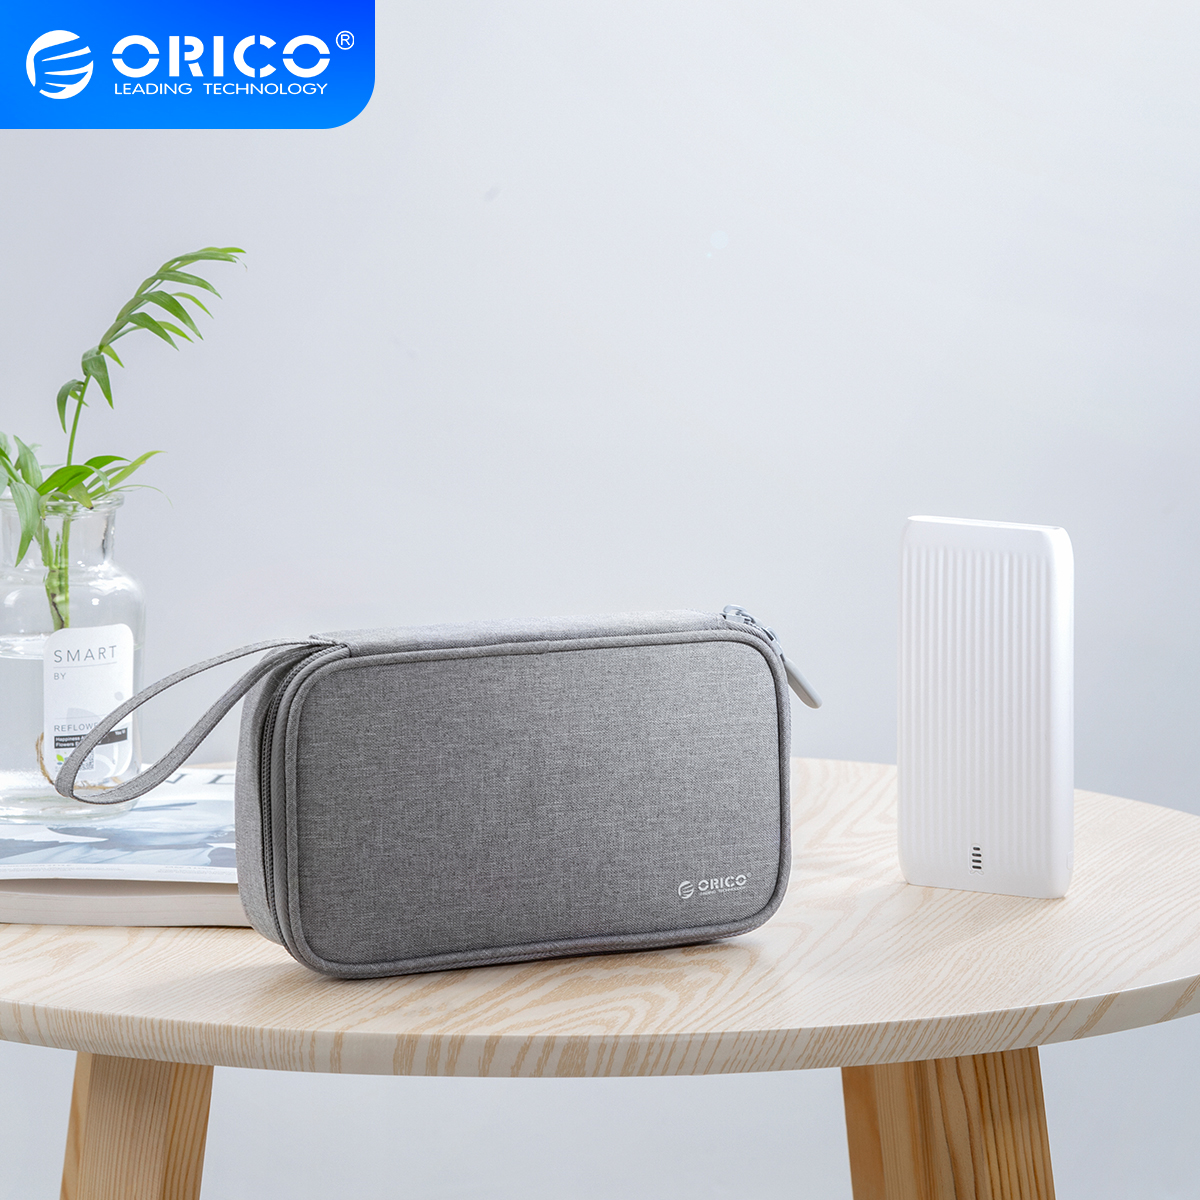 ORICO Cable Organizer Bag Travel Electronic Accessories Carrying Case for USB, Charger, Power Bank Storage Bag Box